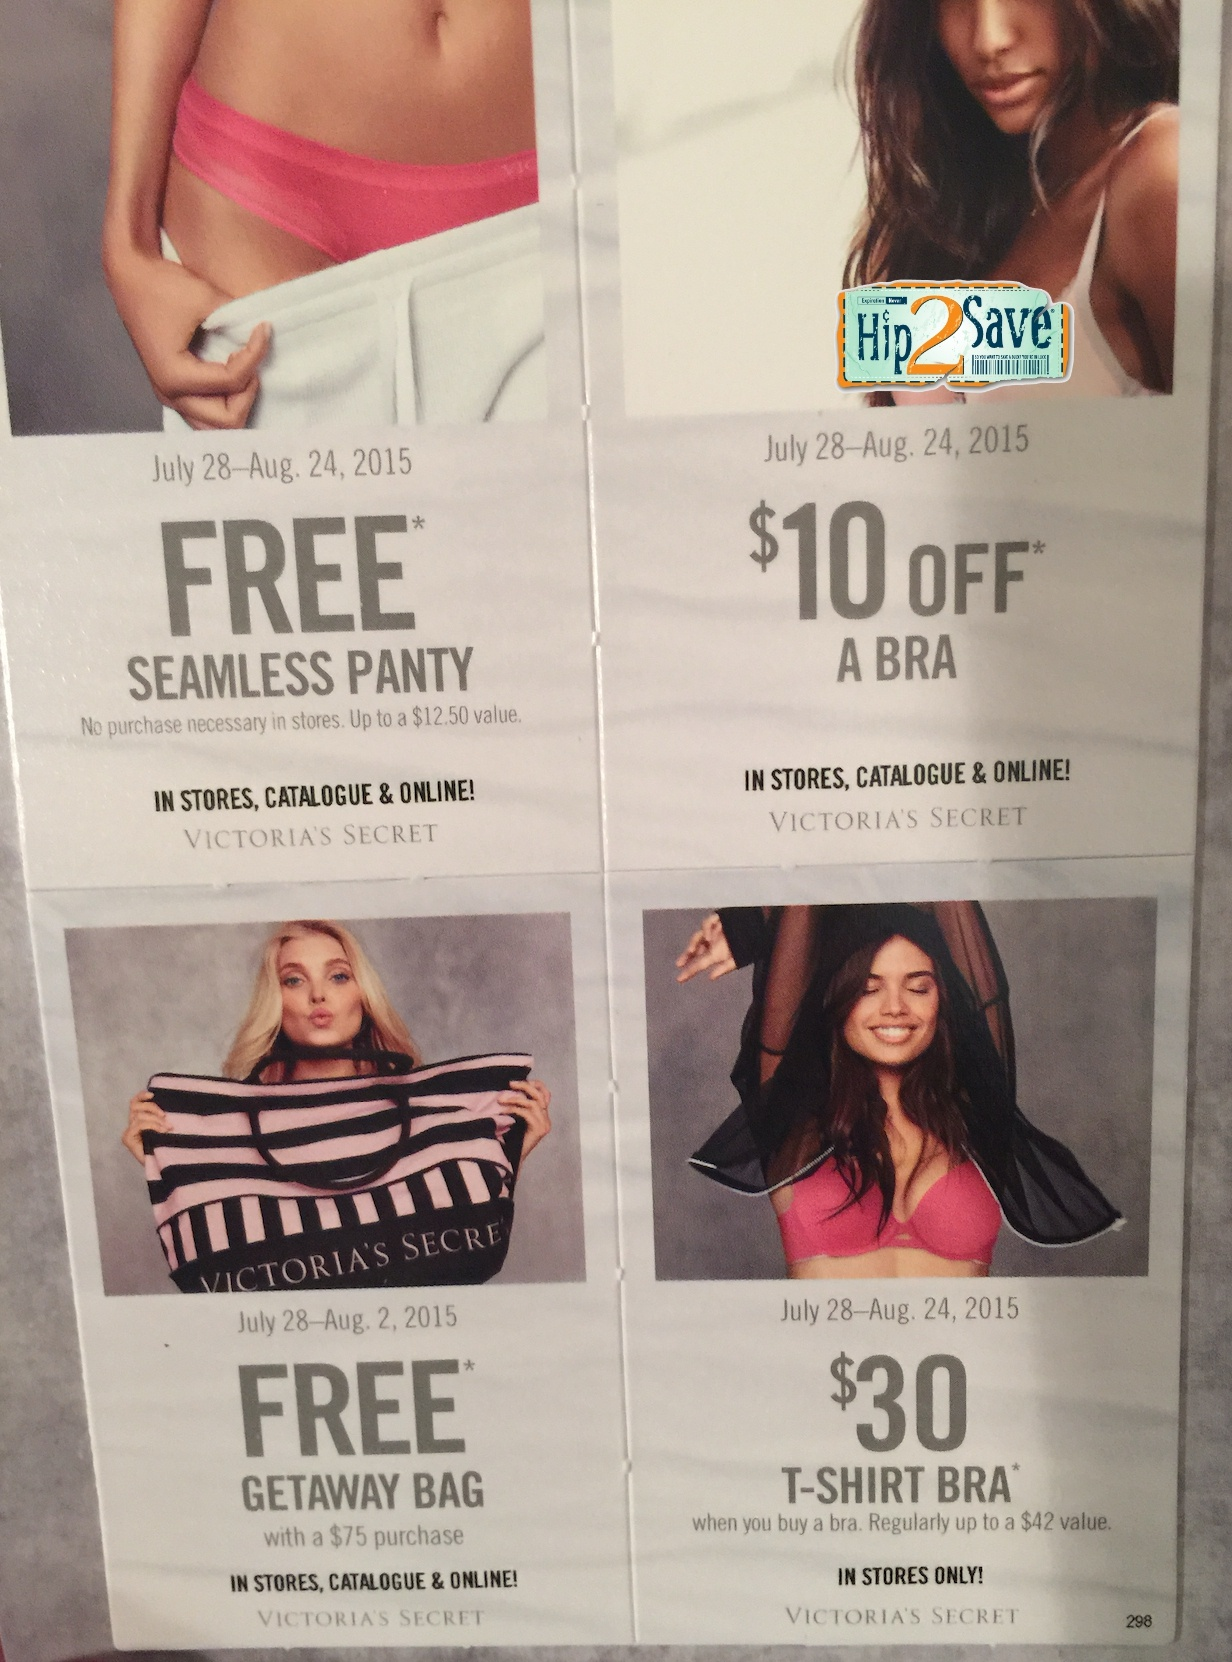 Victoria Secrets Printable Coupons 2015 (86+ Images In Collection - Free Printable Coupons Victoria Secret